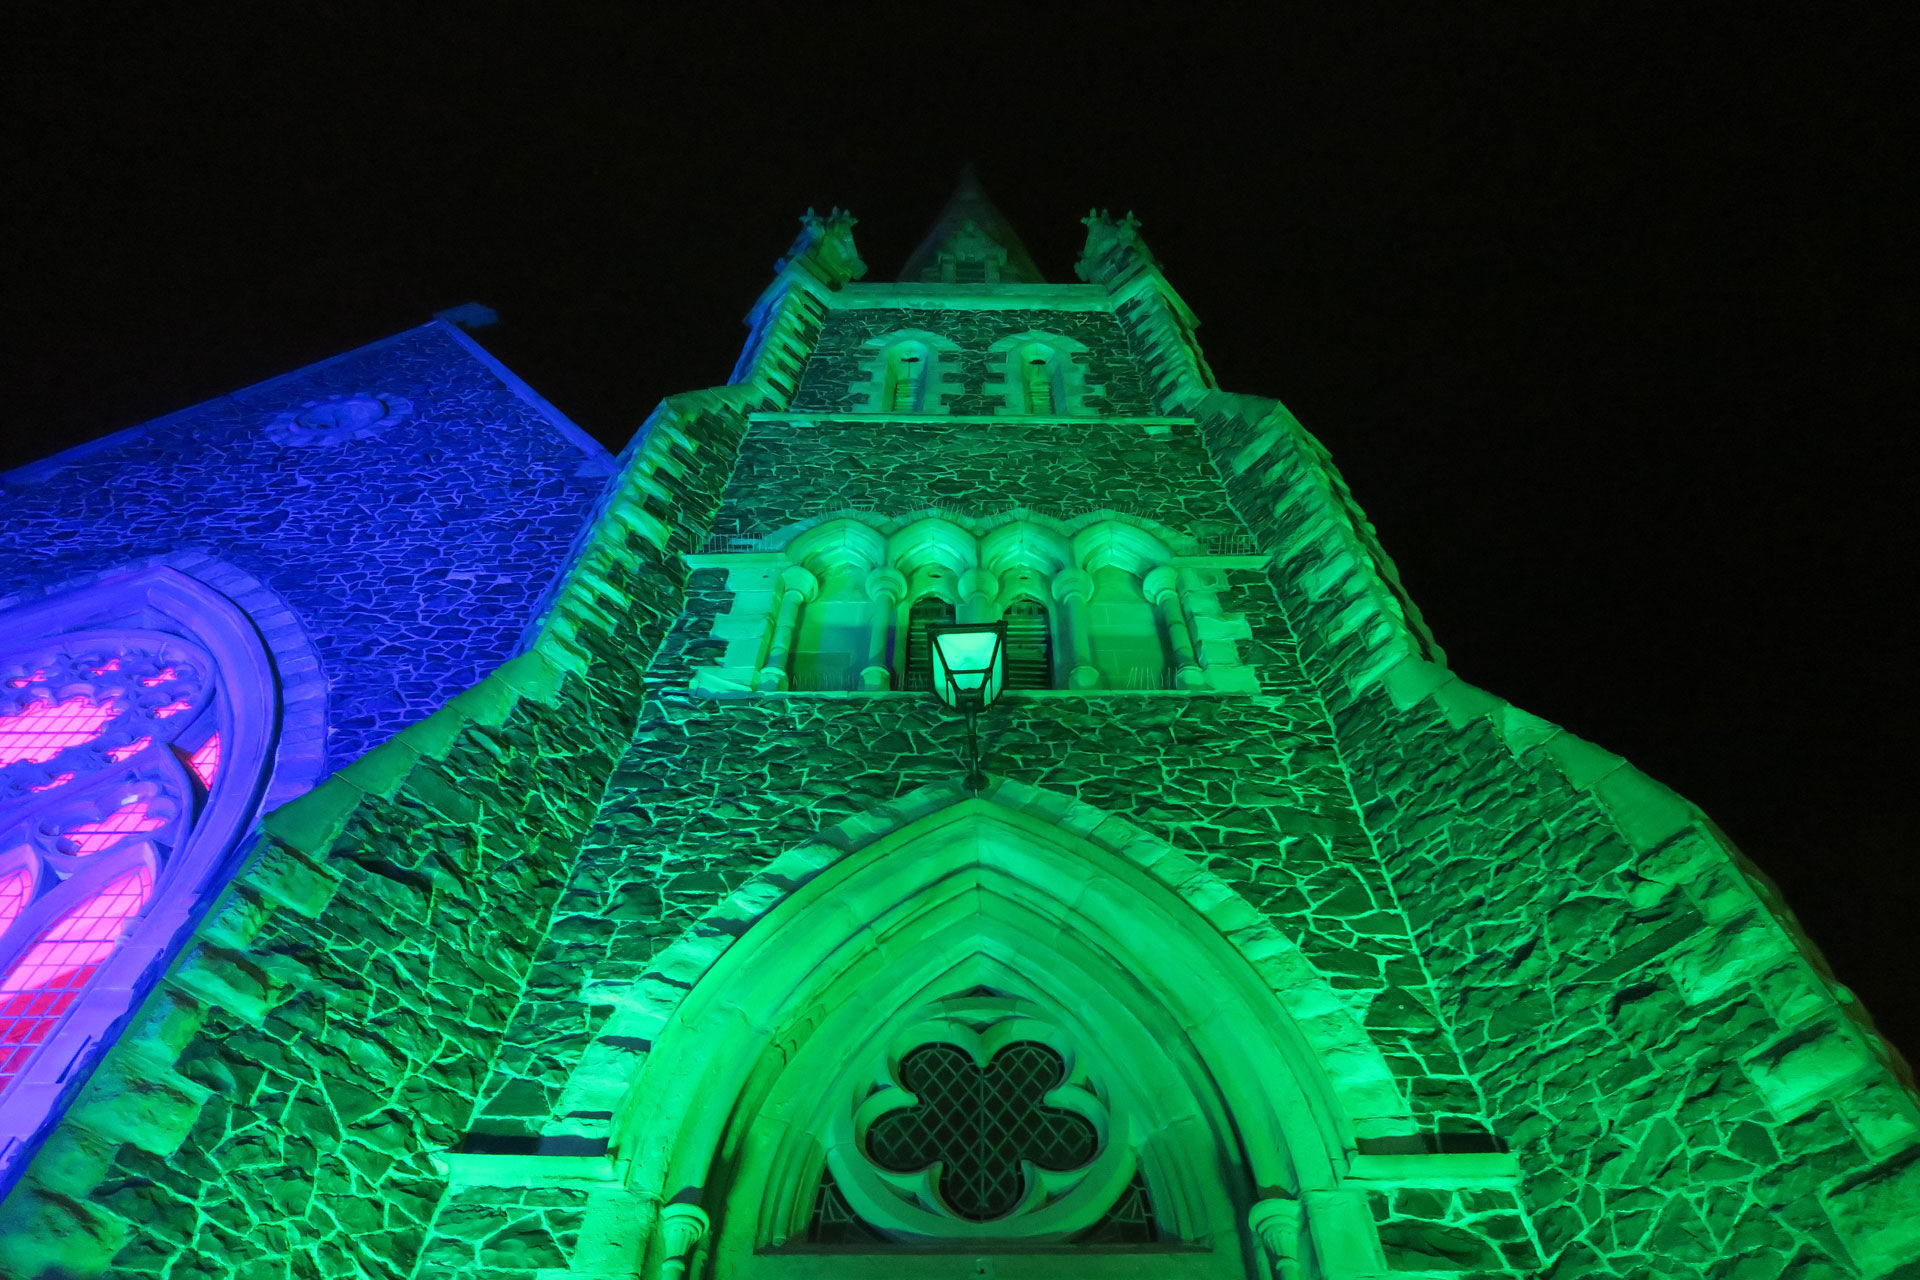 Coloured outdoor lighting at the Llandudno Winter Light / Golau Gaeaf event, in North Wales. St Johns Church on Mostyn Street is illuminated in green and blue with weatherproof LED up lighting,